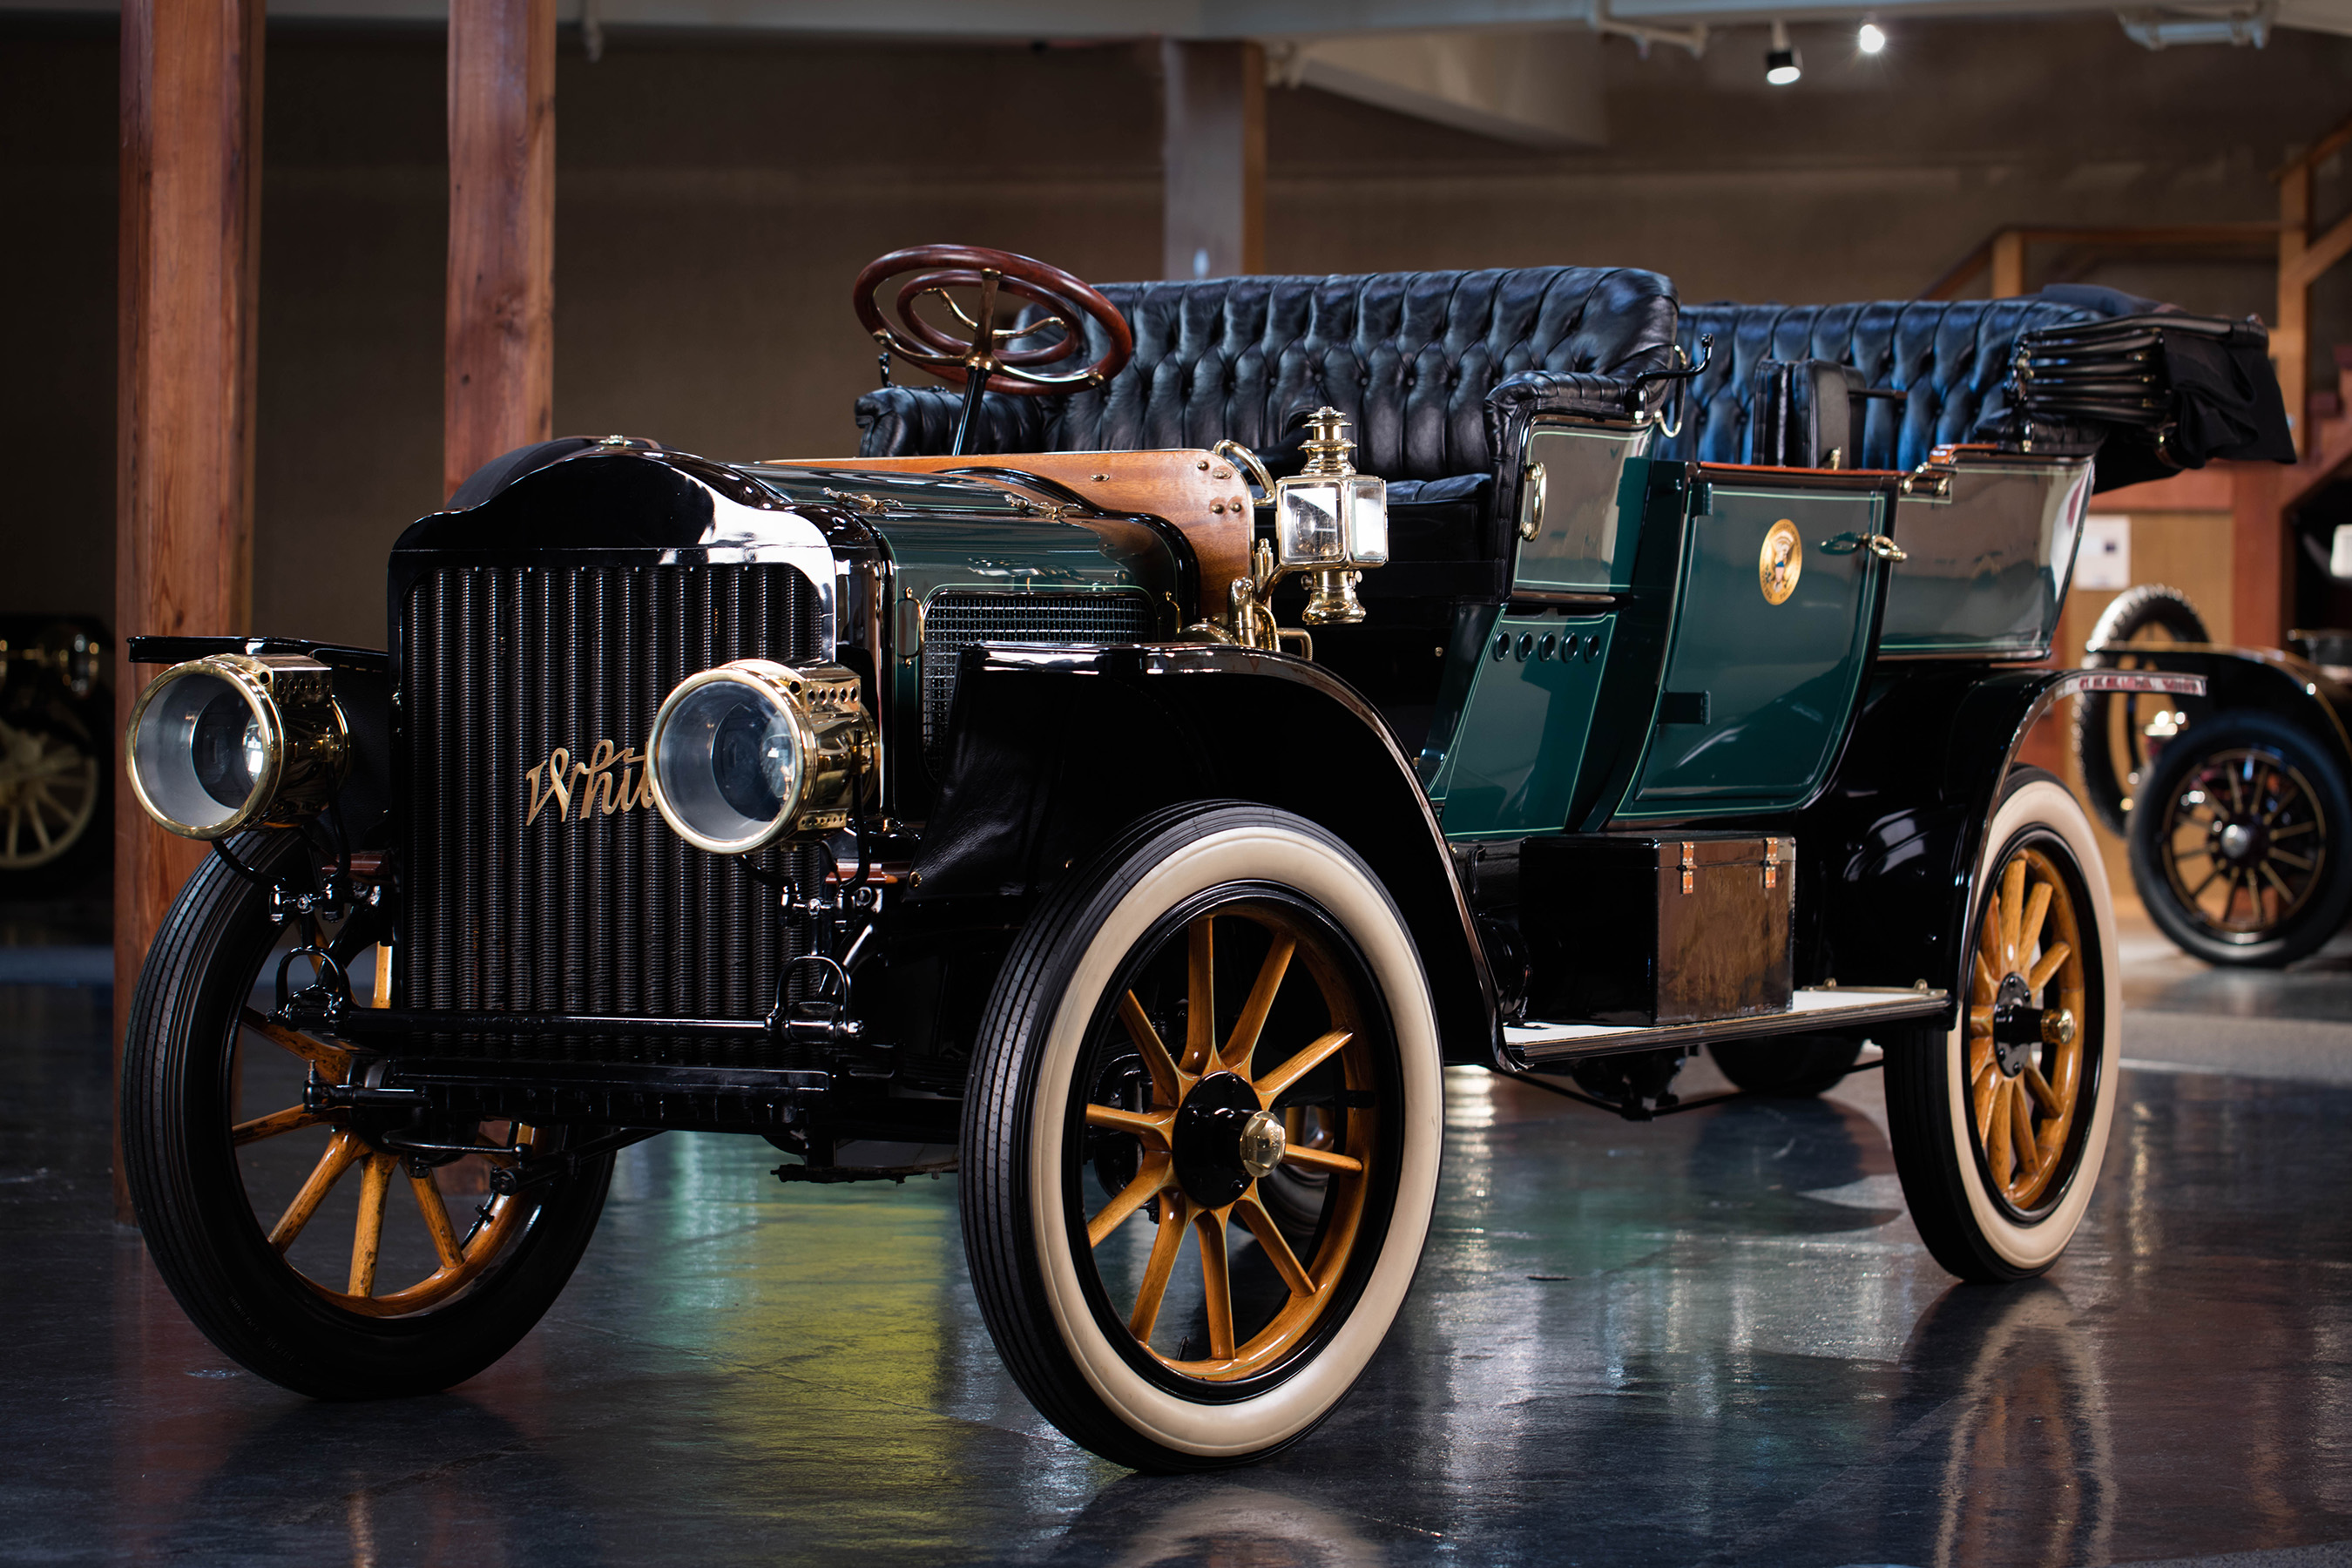 """The 1909 White Model """"M"""" Steam Car used by President Taft has been on permanent public display at the Heritage Museums & Gardens in Sandwich, MA since 1970 and was fully restored in 1969. (Photo courtesy of the Historic Vehicle Association/Casey Maxon-March 2016)"""